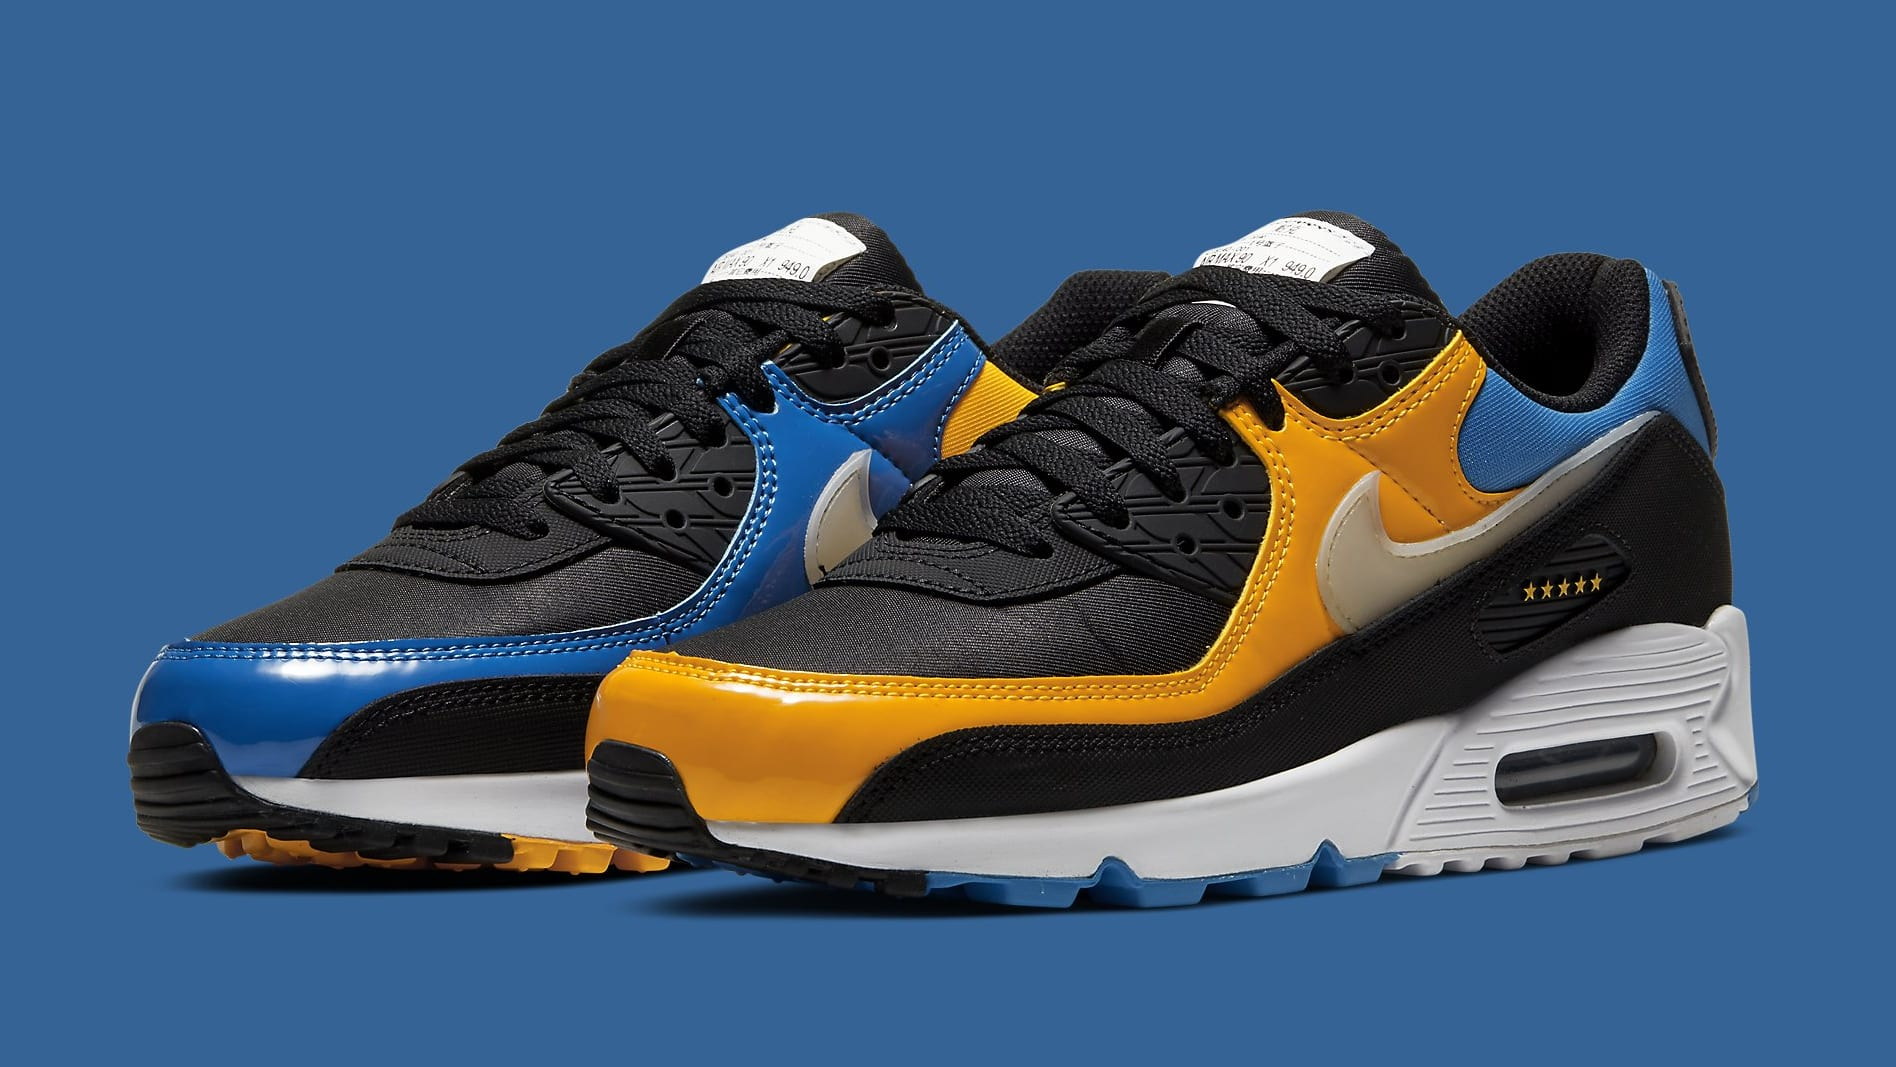 nike-air-max-90-shanghai-city-pack-ct9140-001-pair